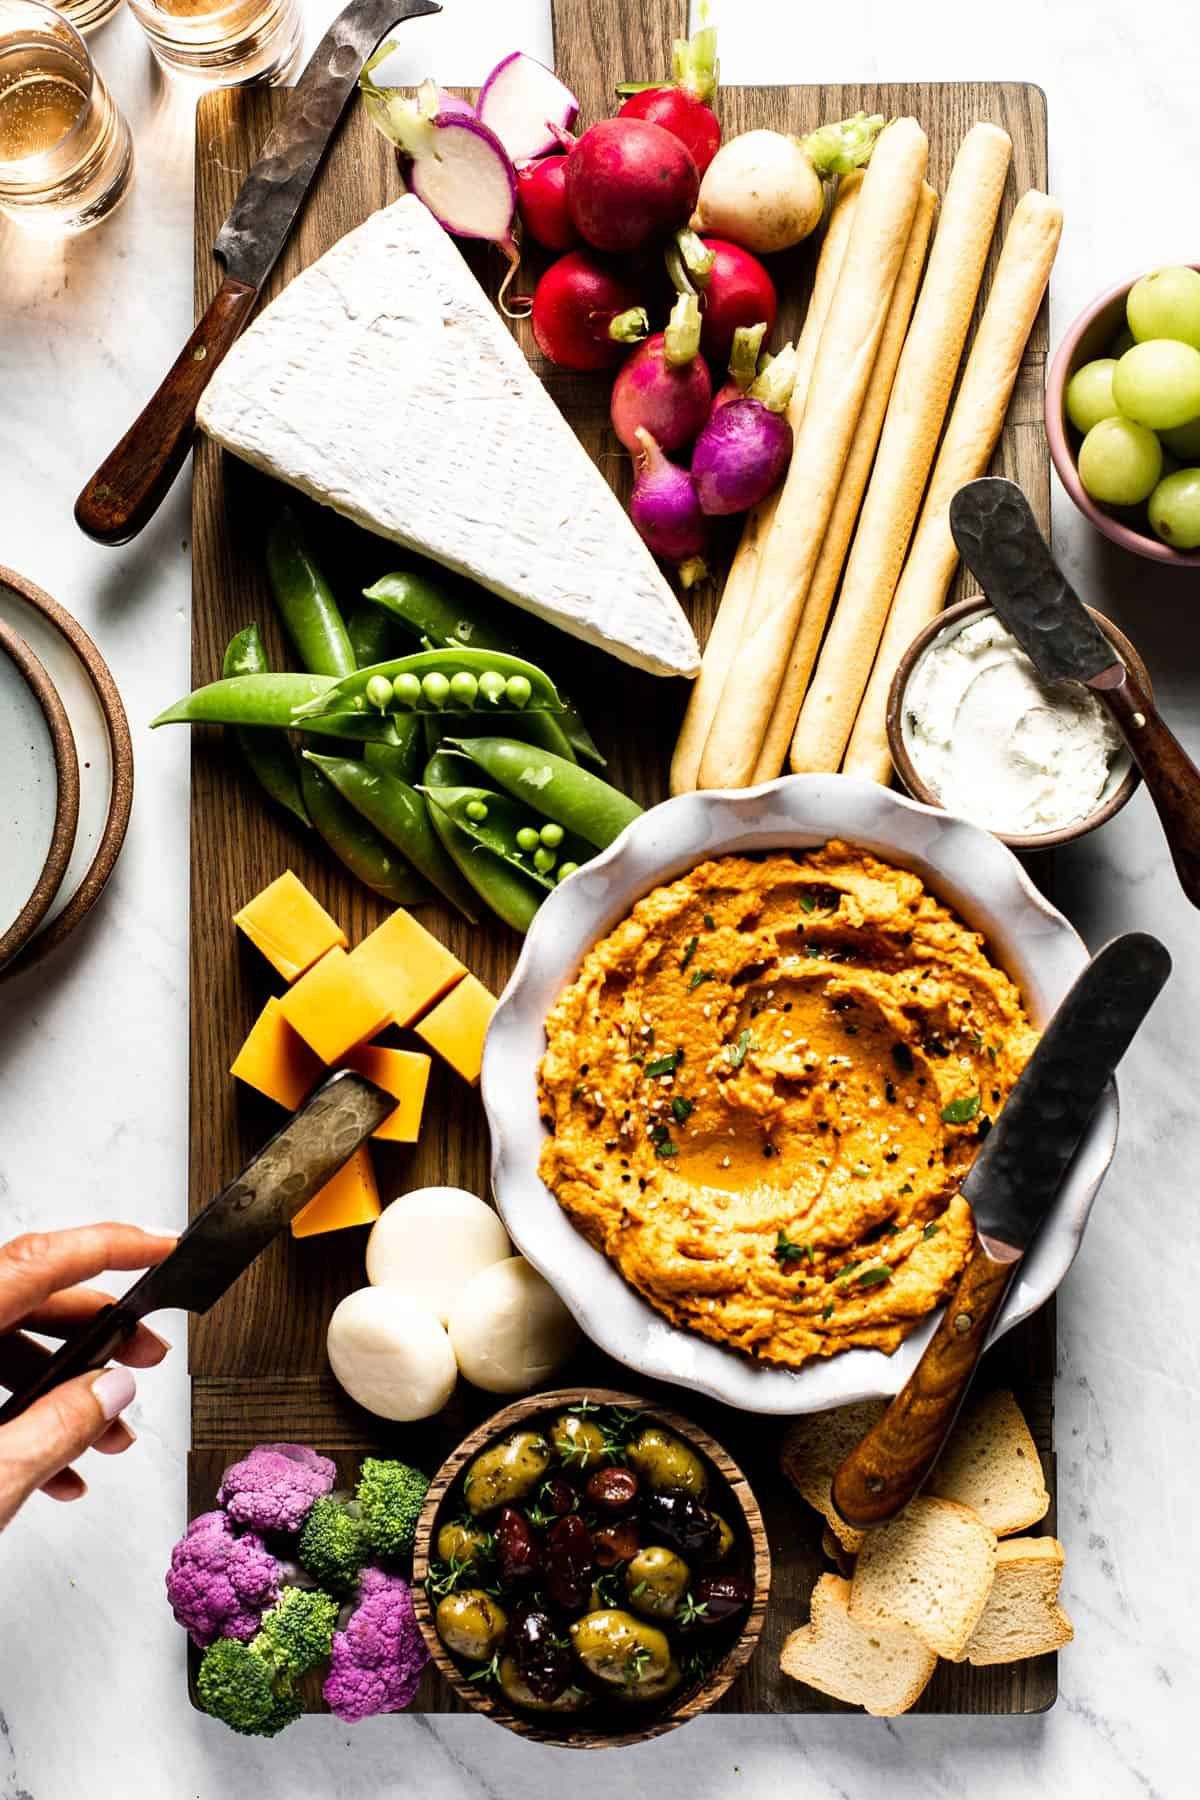 Carrot hummus is being served as a part of cheese platter